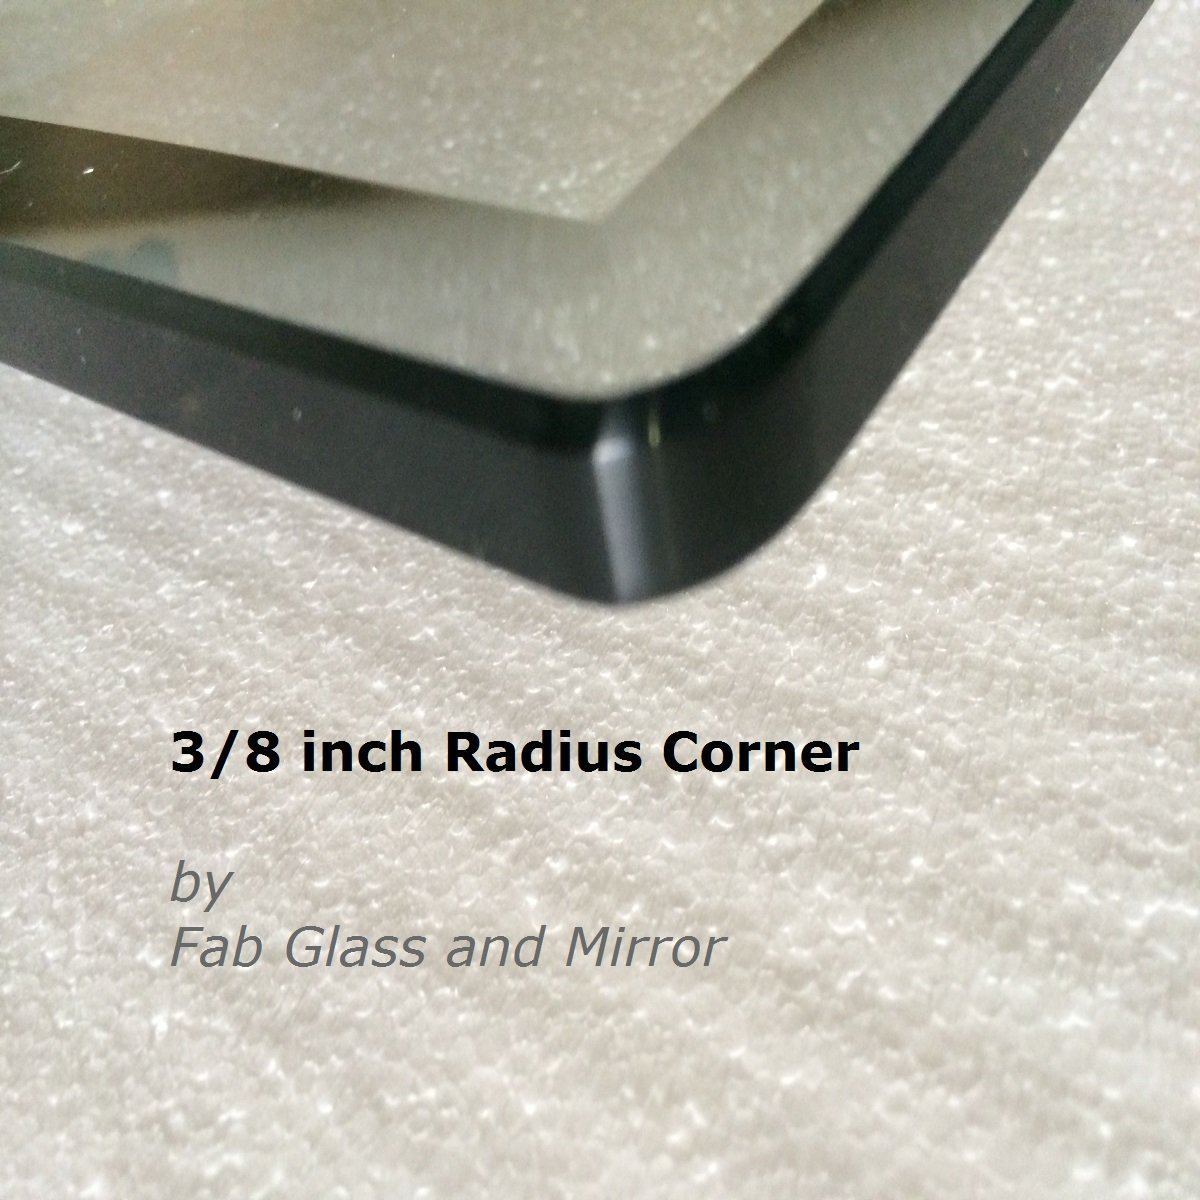 Fab Glass & Mirror Rectangle Glass 1/2'' Thick Beveled Tempered Radius Corners, 24'' L x 48'' W by Fab Glass and Mirror